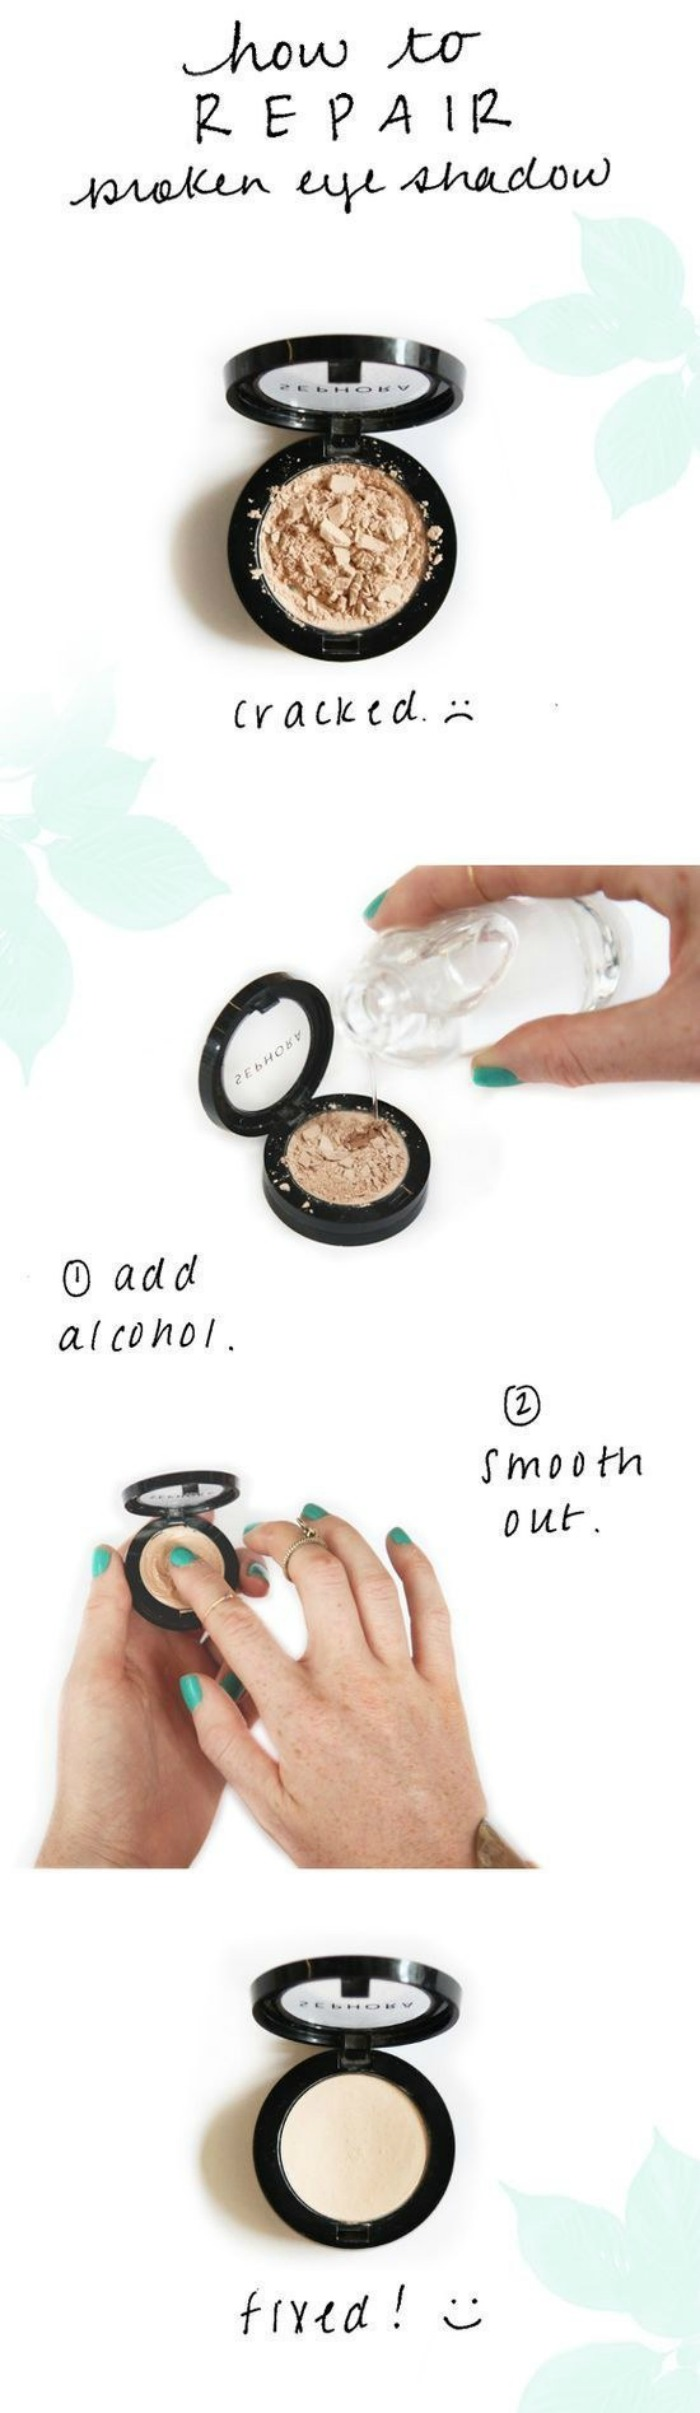 Save Broken Makeup with Rubbing Alcohol